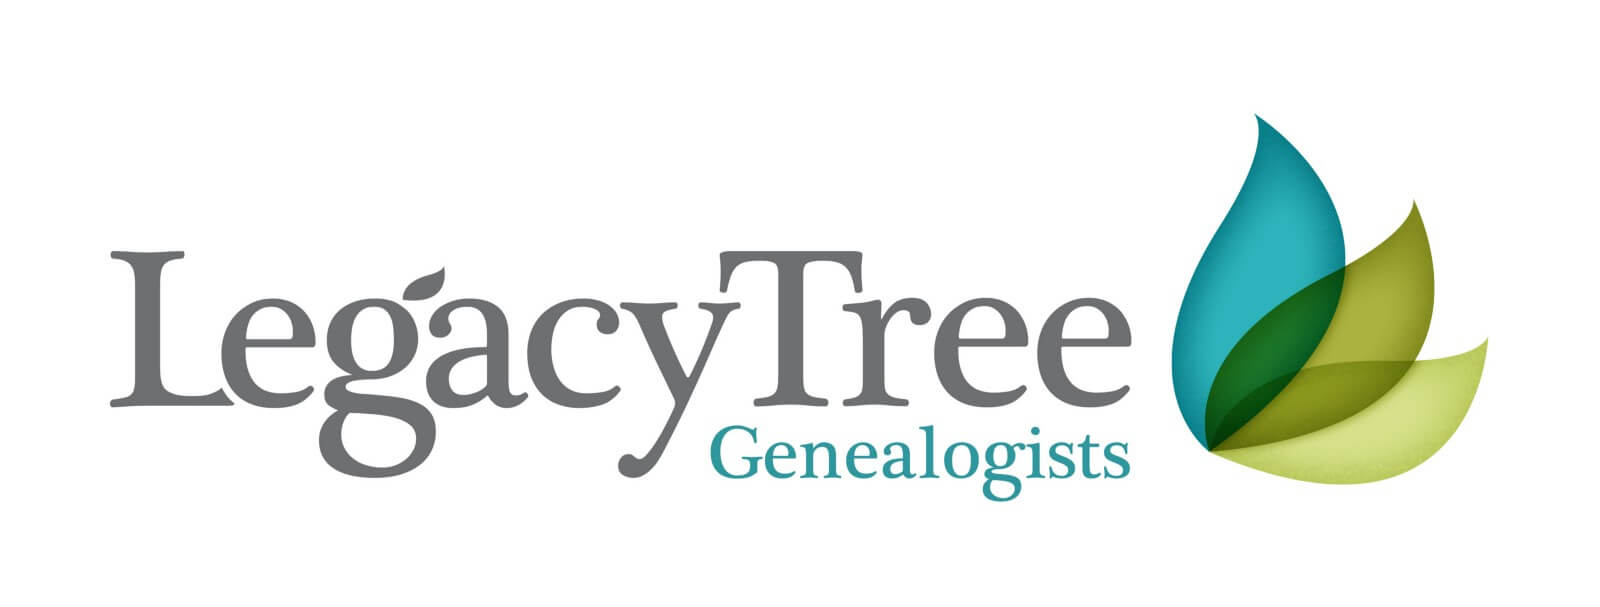 Exclusive Offer from Legacy Tree Genealogists